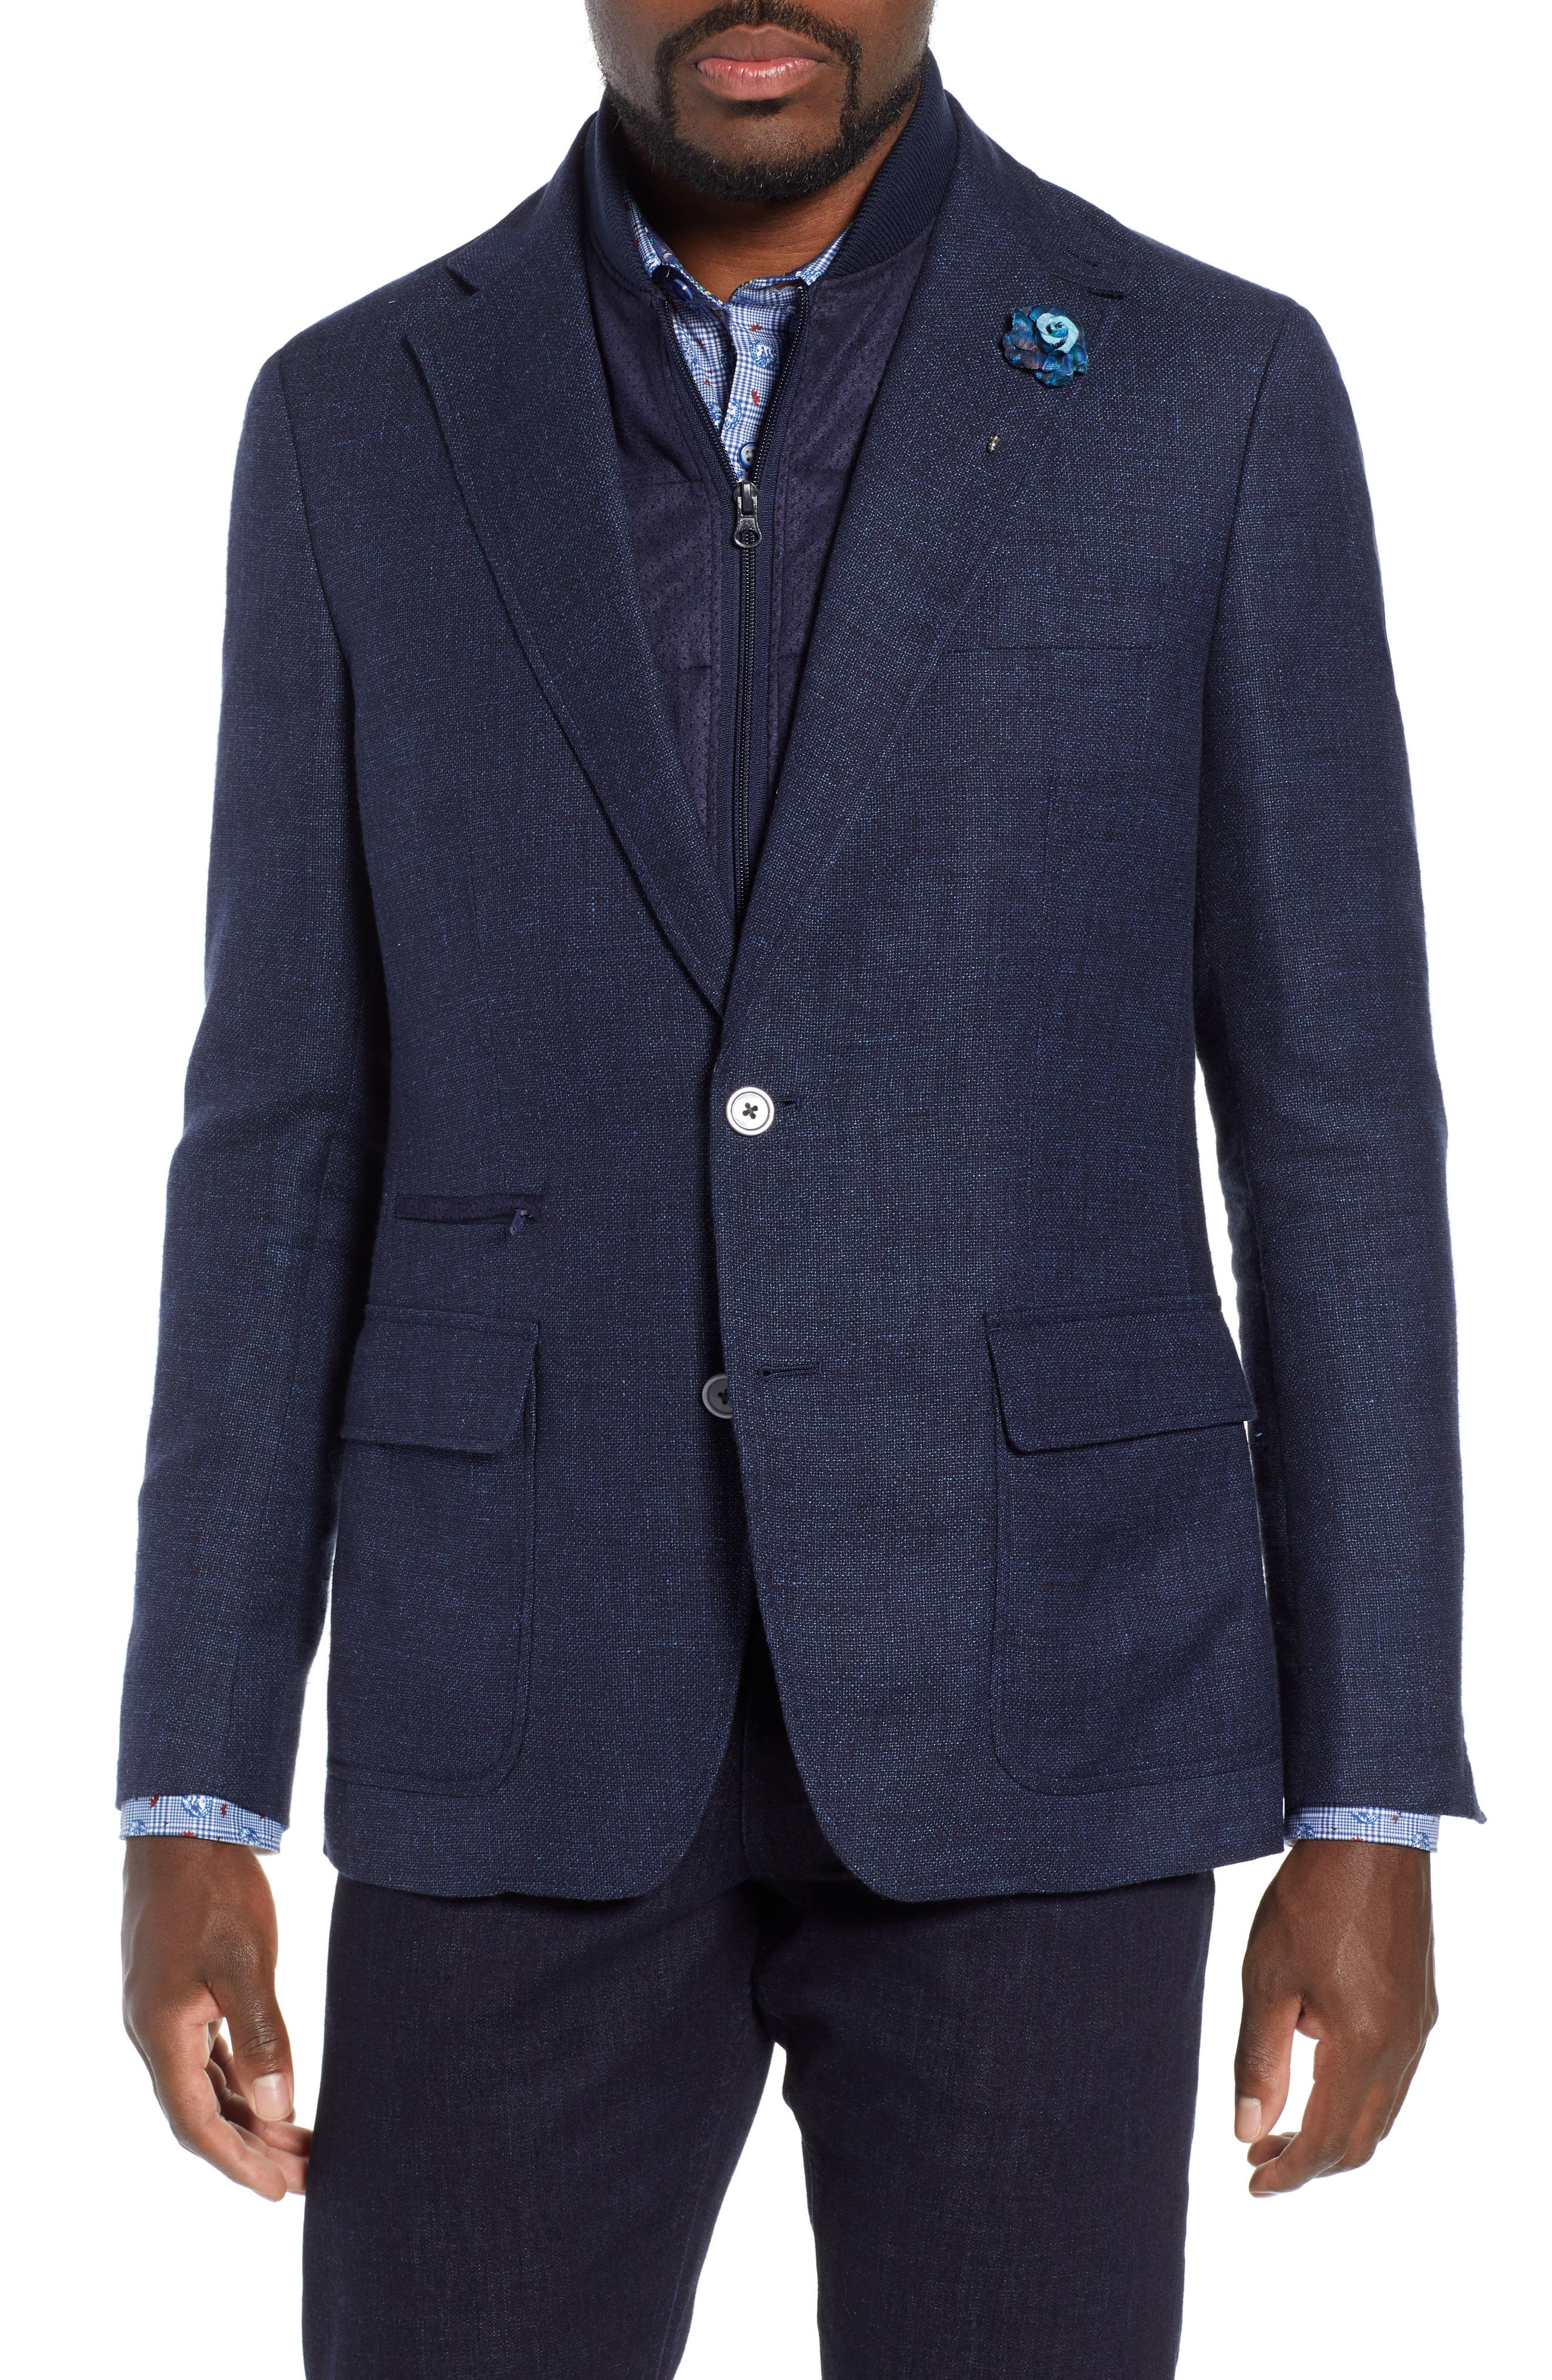 Downhill Tailored Wool Sport Coat,                             Main thumbnail 1, color,                             NAVY